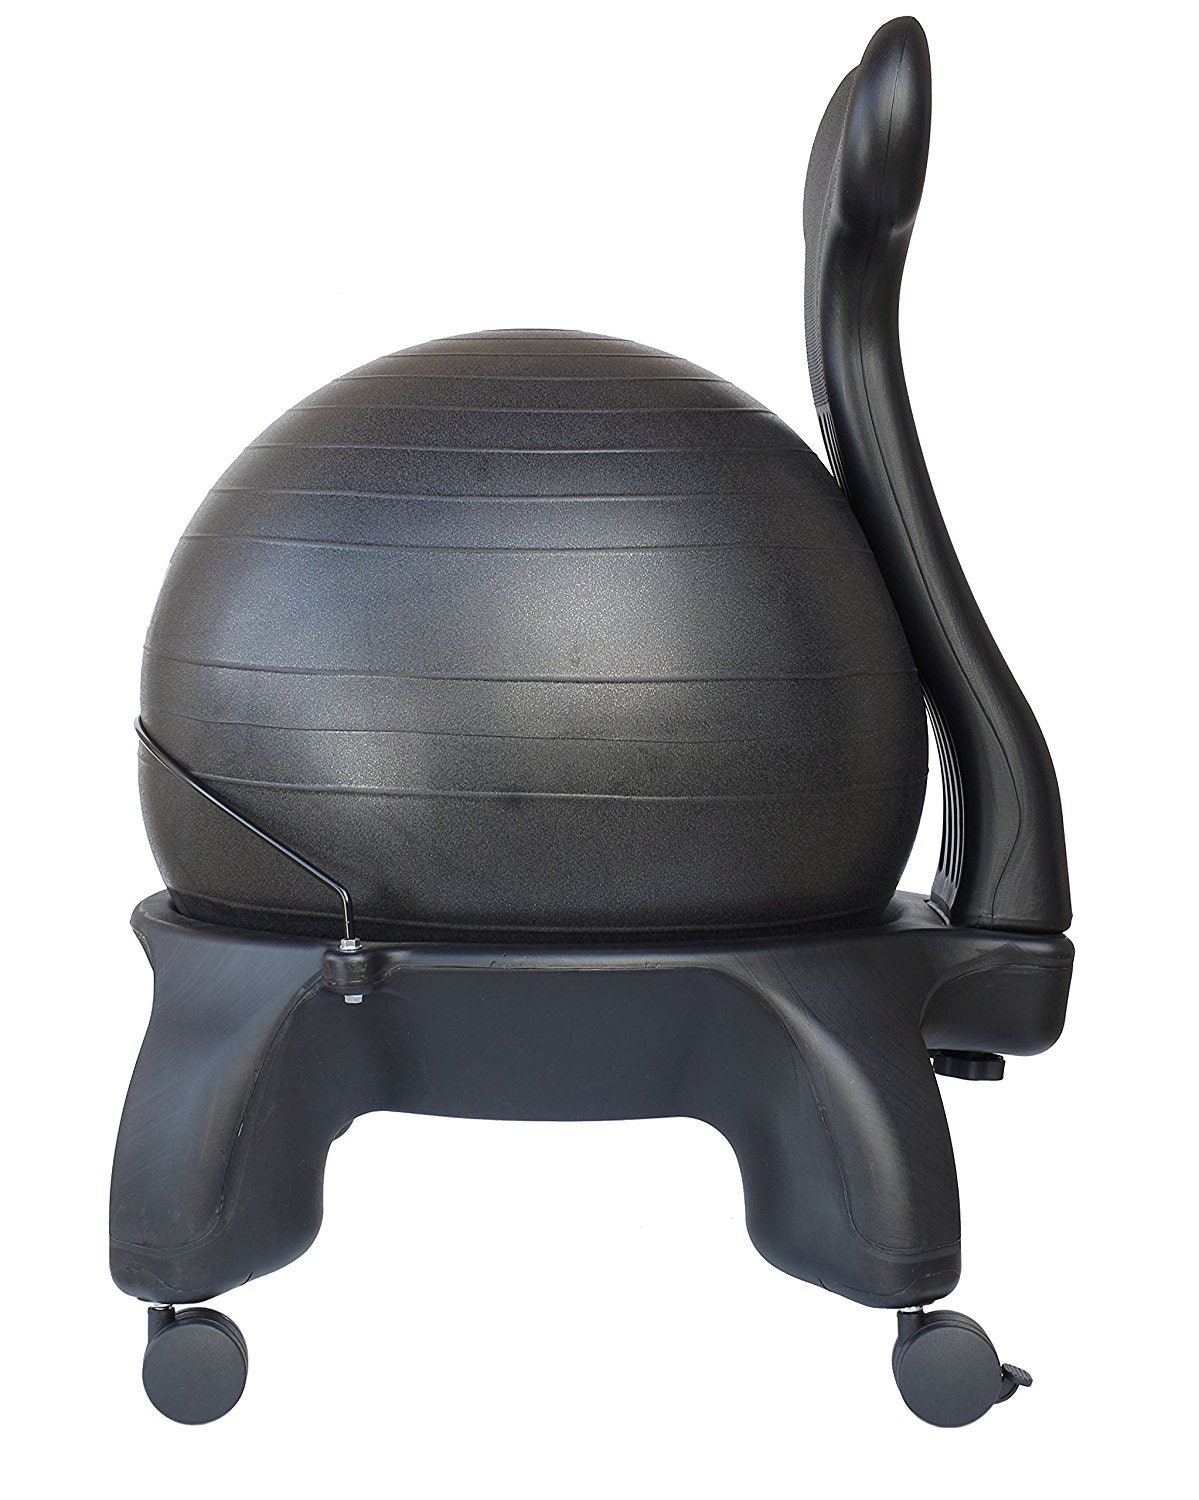 Chair Exercise The 5 Best Balance Ball Chairs For The Office